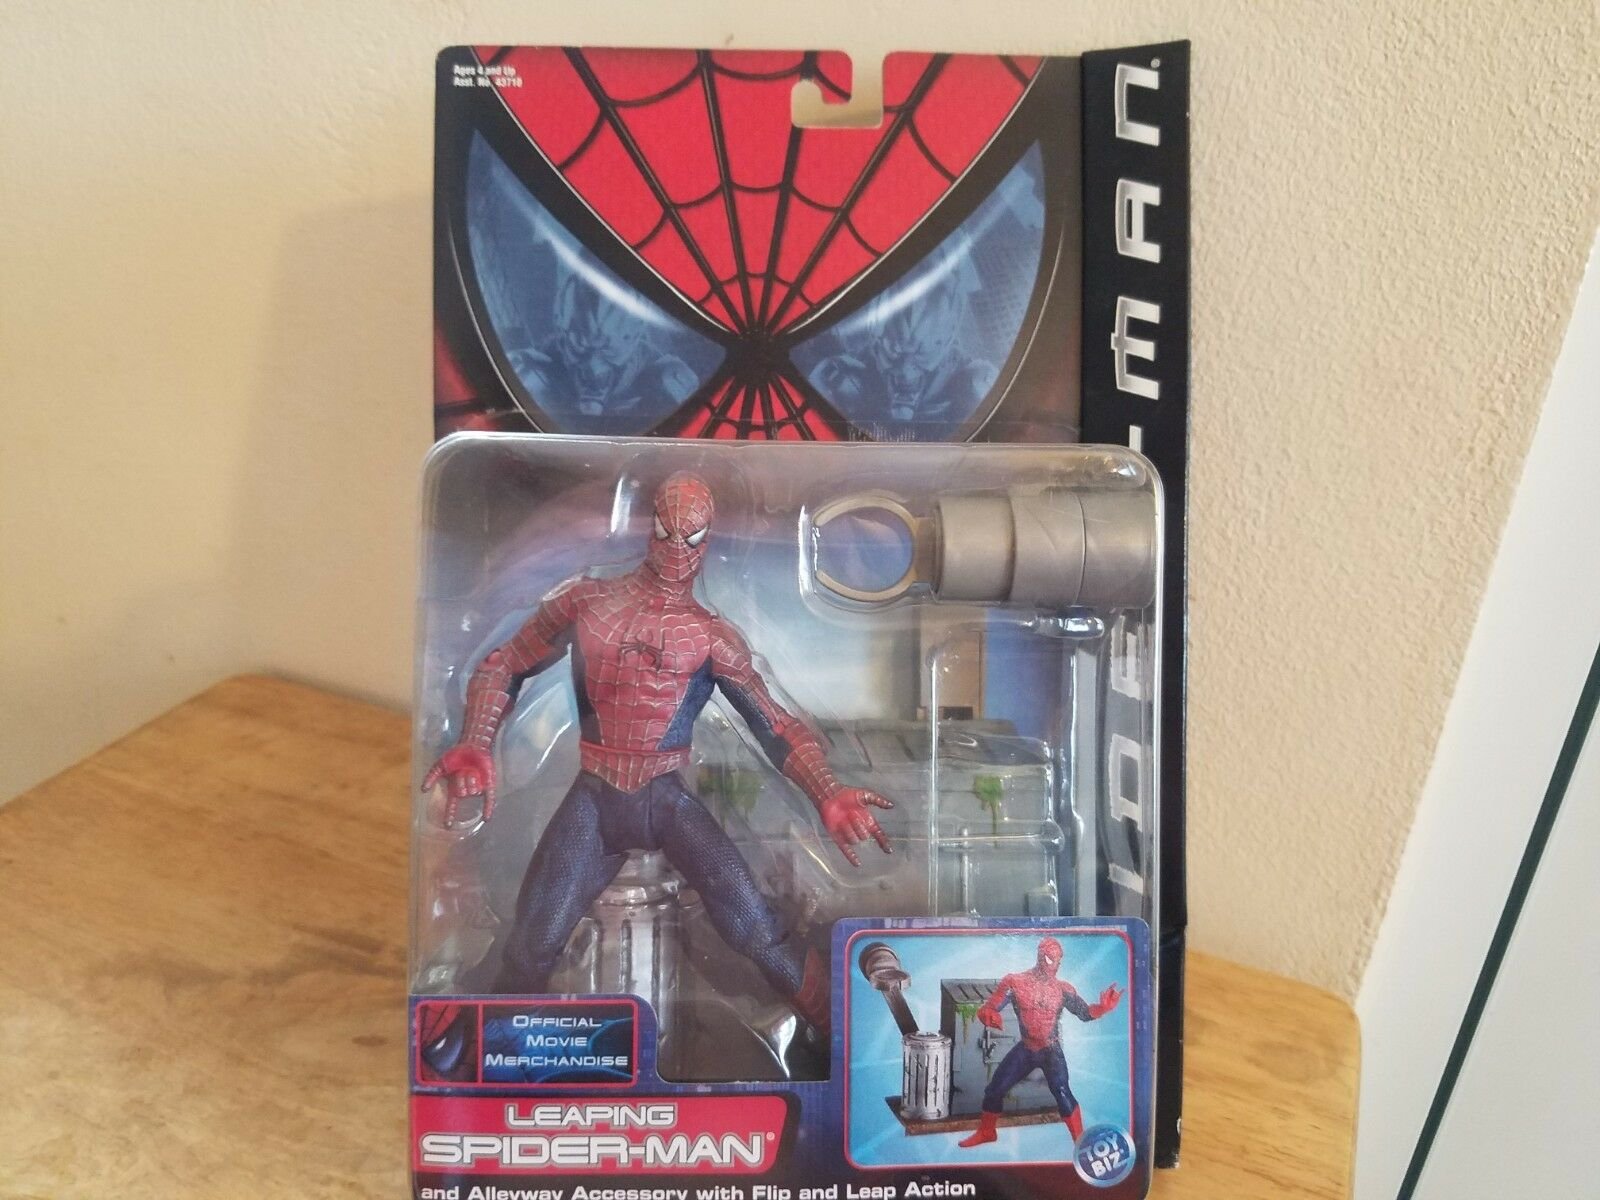 Marvel spider-man action figures leaping series 2 unopened 2002